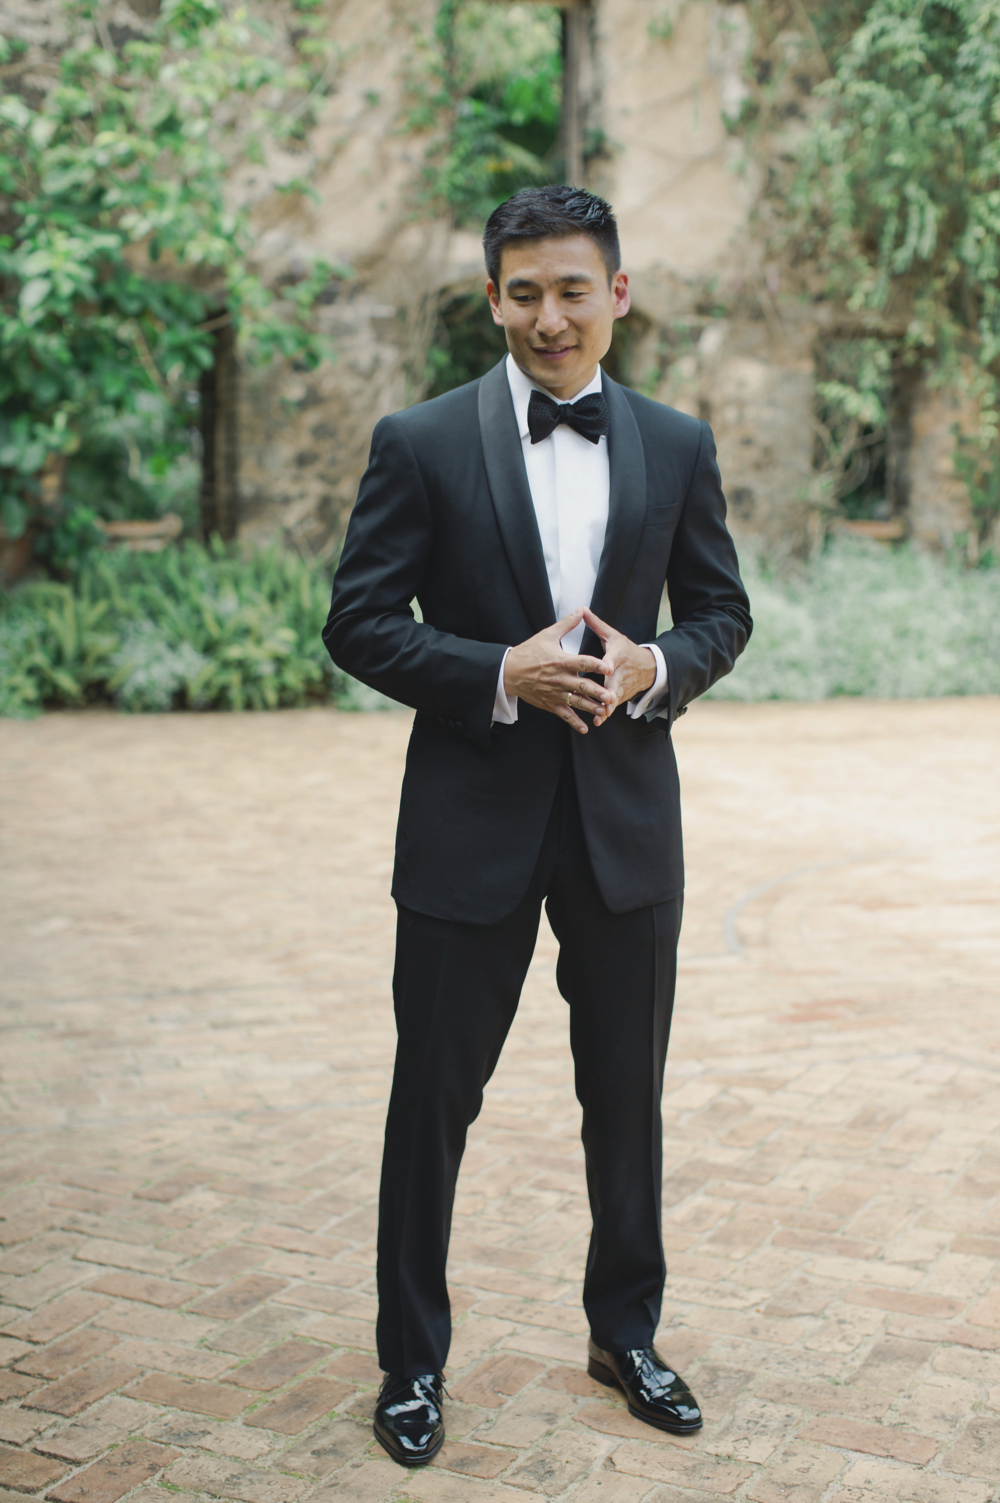 maui-wedding-photographer-chris-j-evans-grooms00003.png